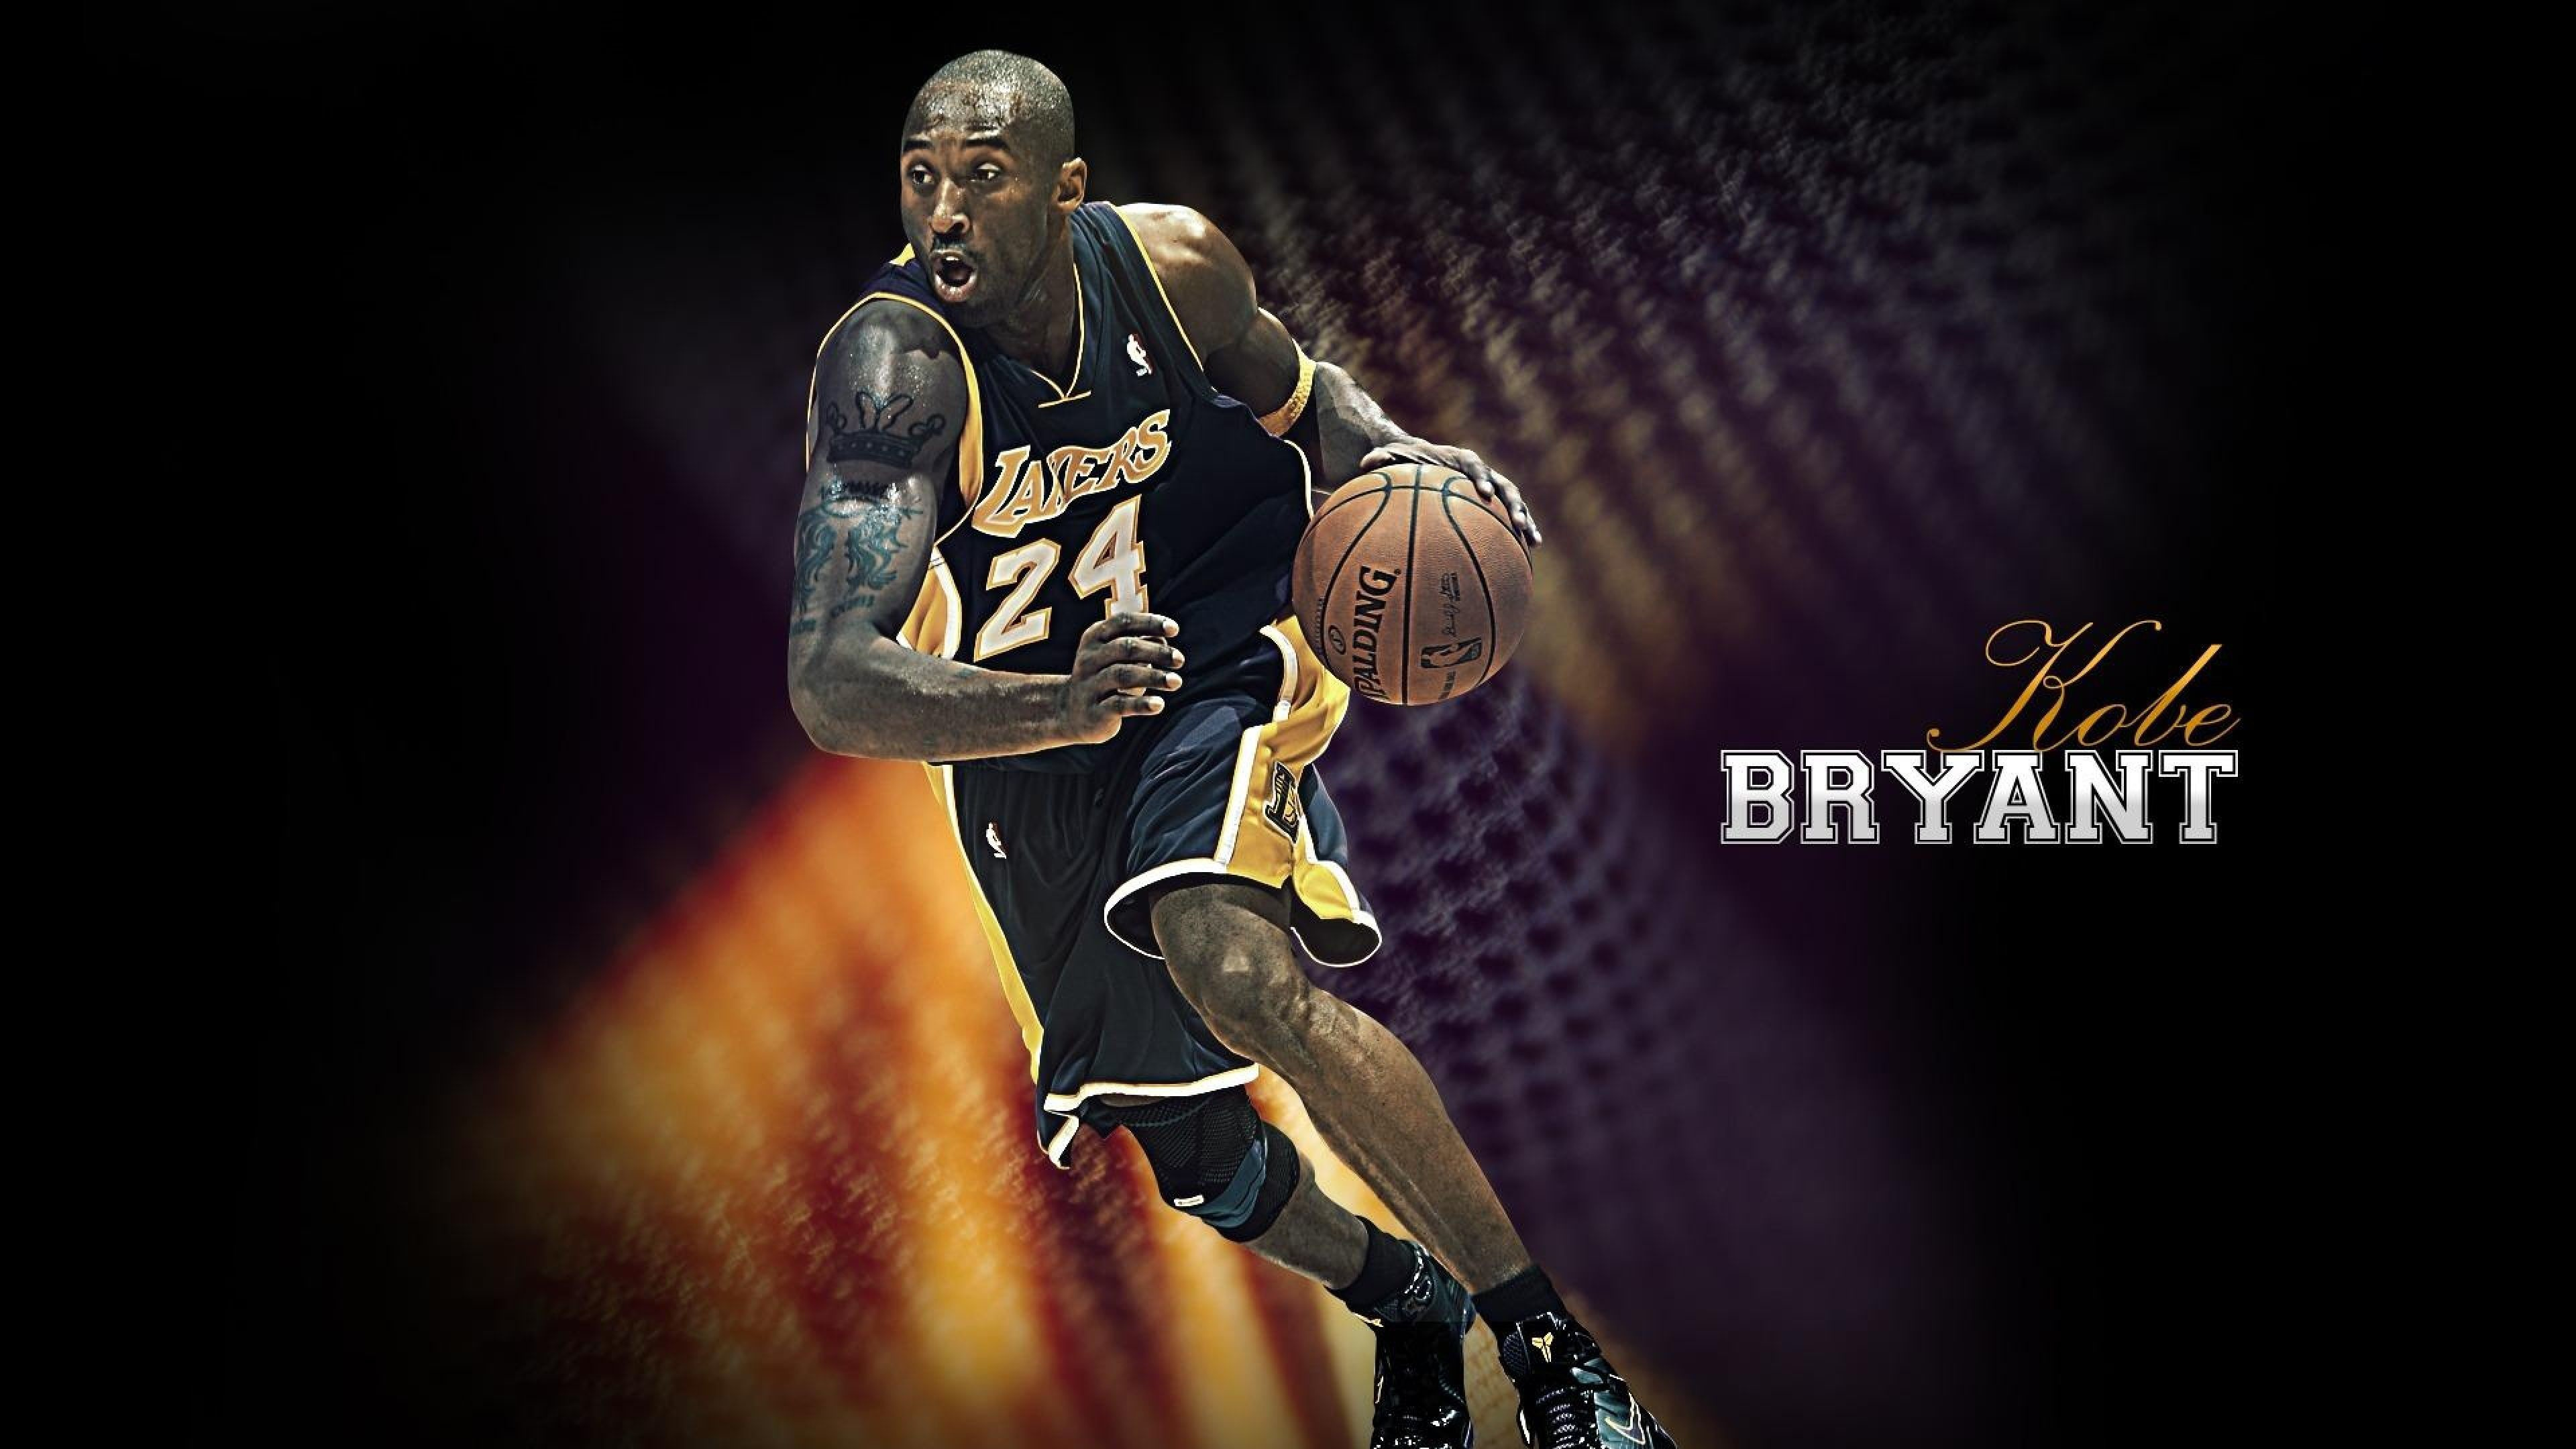 Kobe bryant wallpaper 2018 73 images 3840x2160 4k ultra hd kobe bryant wallpapers hd desktop backgrounds 3840x2160 voltagebd Image collections